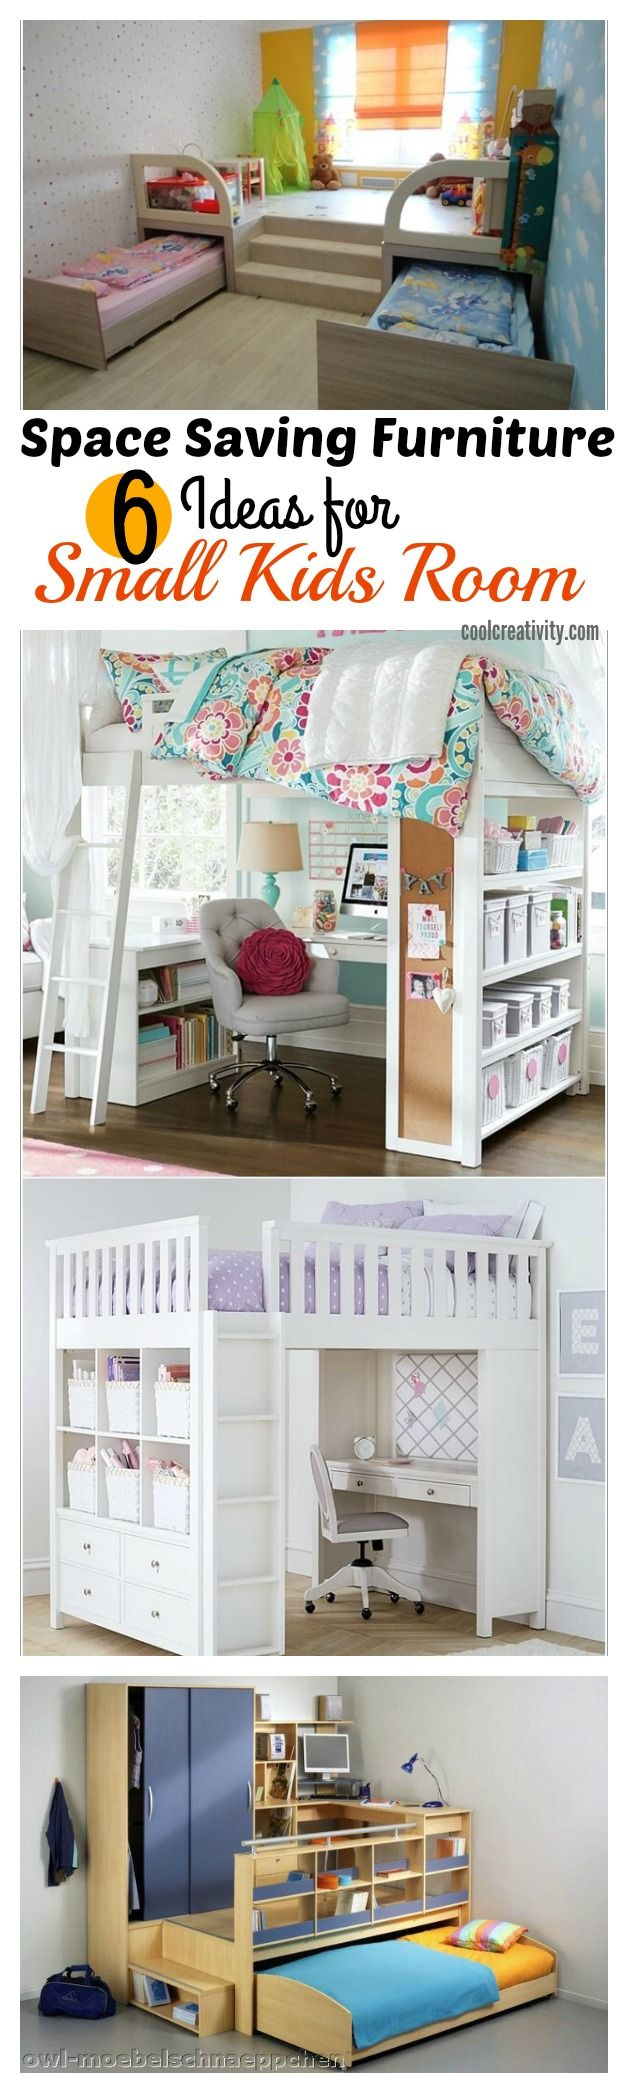 6 E Saving Furniture Ideas For Small Kids Room